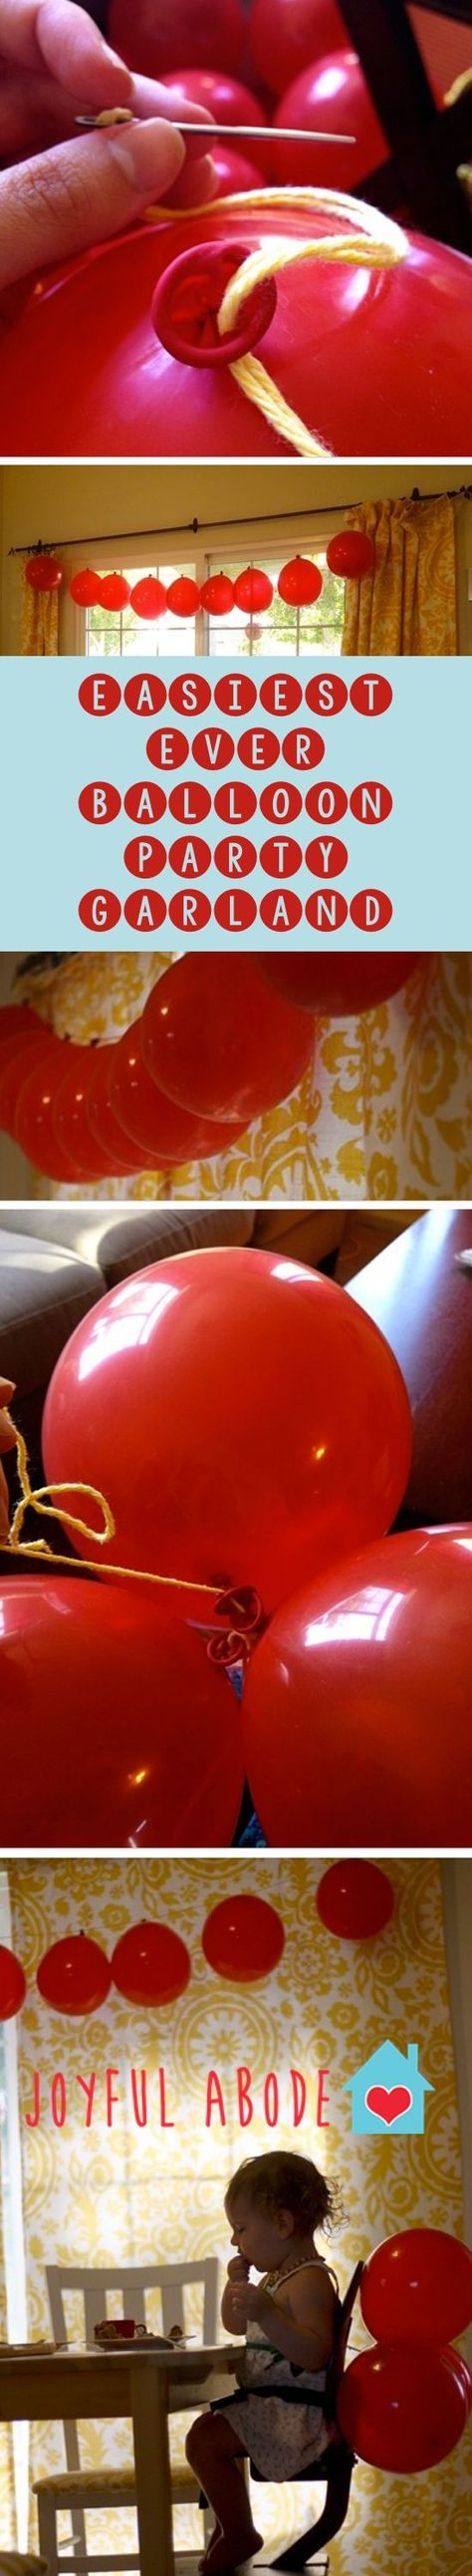 easiest EVER balloon party garland. Make garlands to hang or bunches to decorate with. | DIY party decor | DIY balloon decorations | balloon decor ideas | how to decorate with balloons | how to decorate for a party | homemade party decor | DIY balloon gar